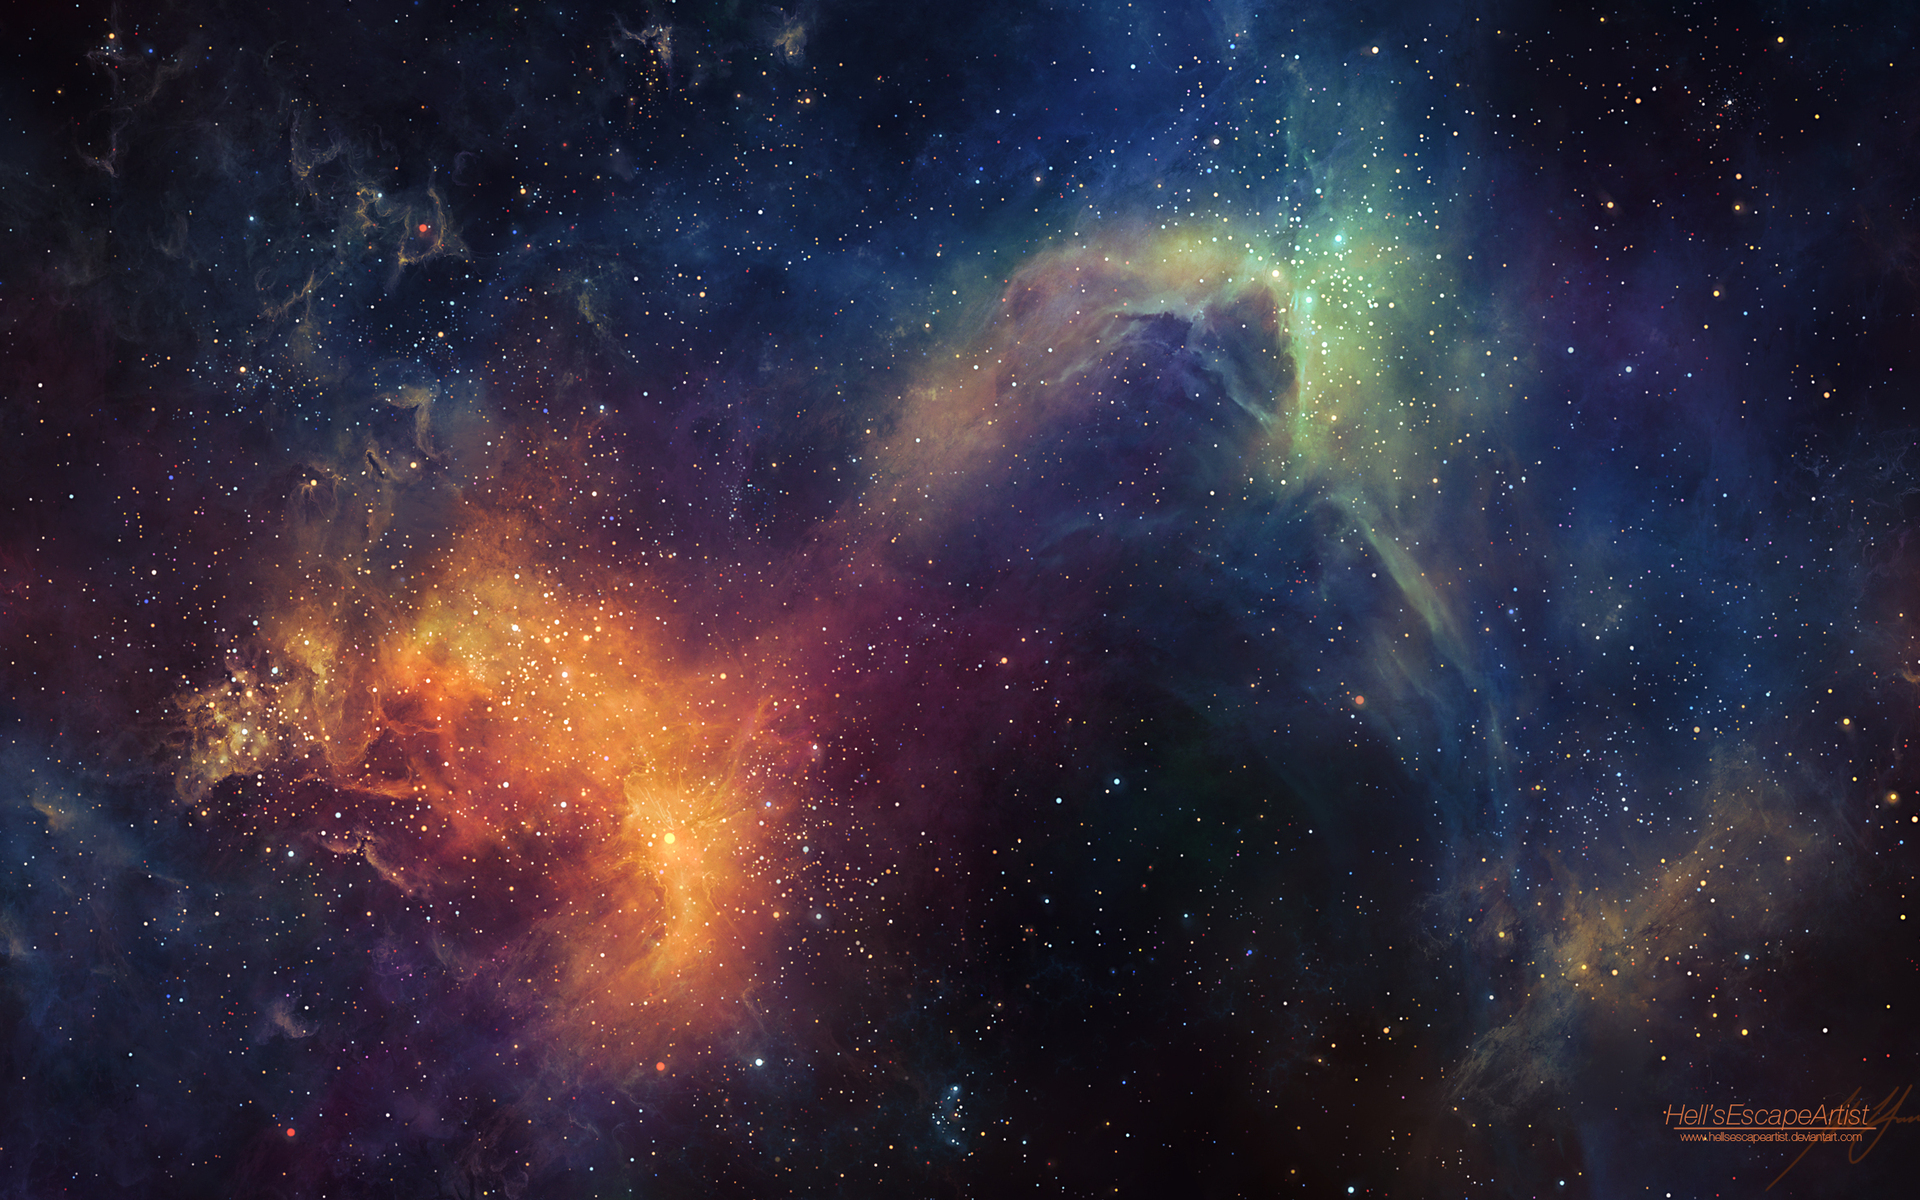 Stars and Space Desktop Backgrounds Desktop Image 1920x1200